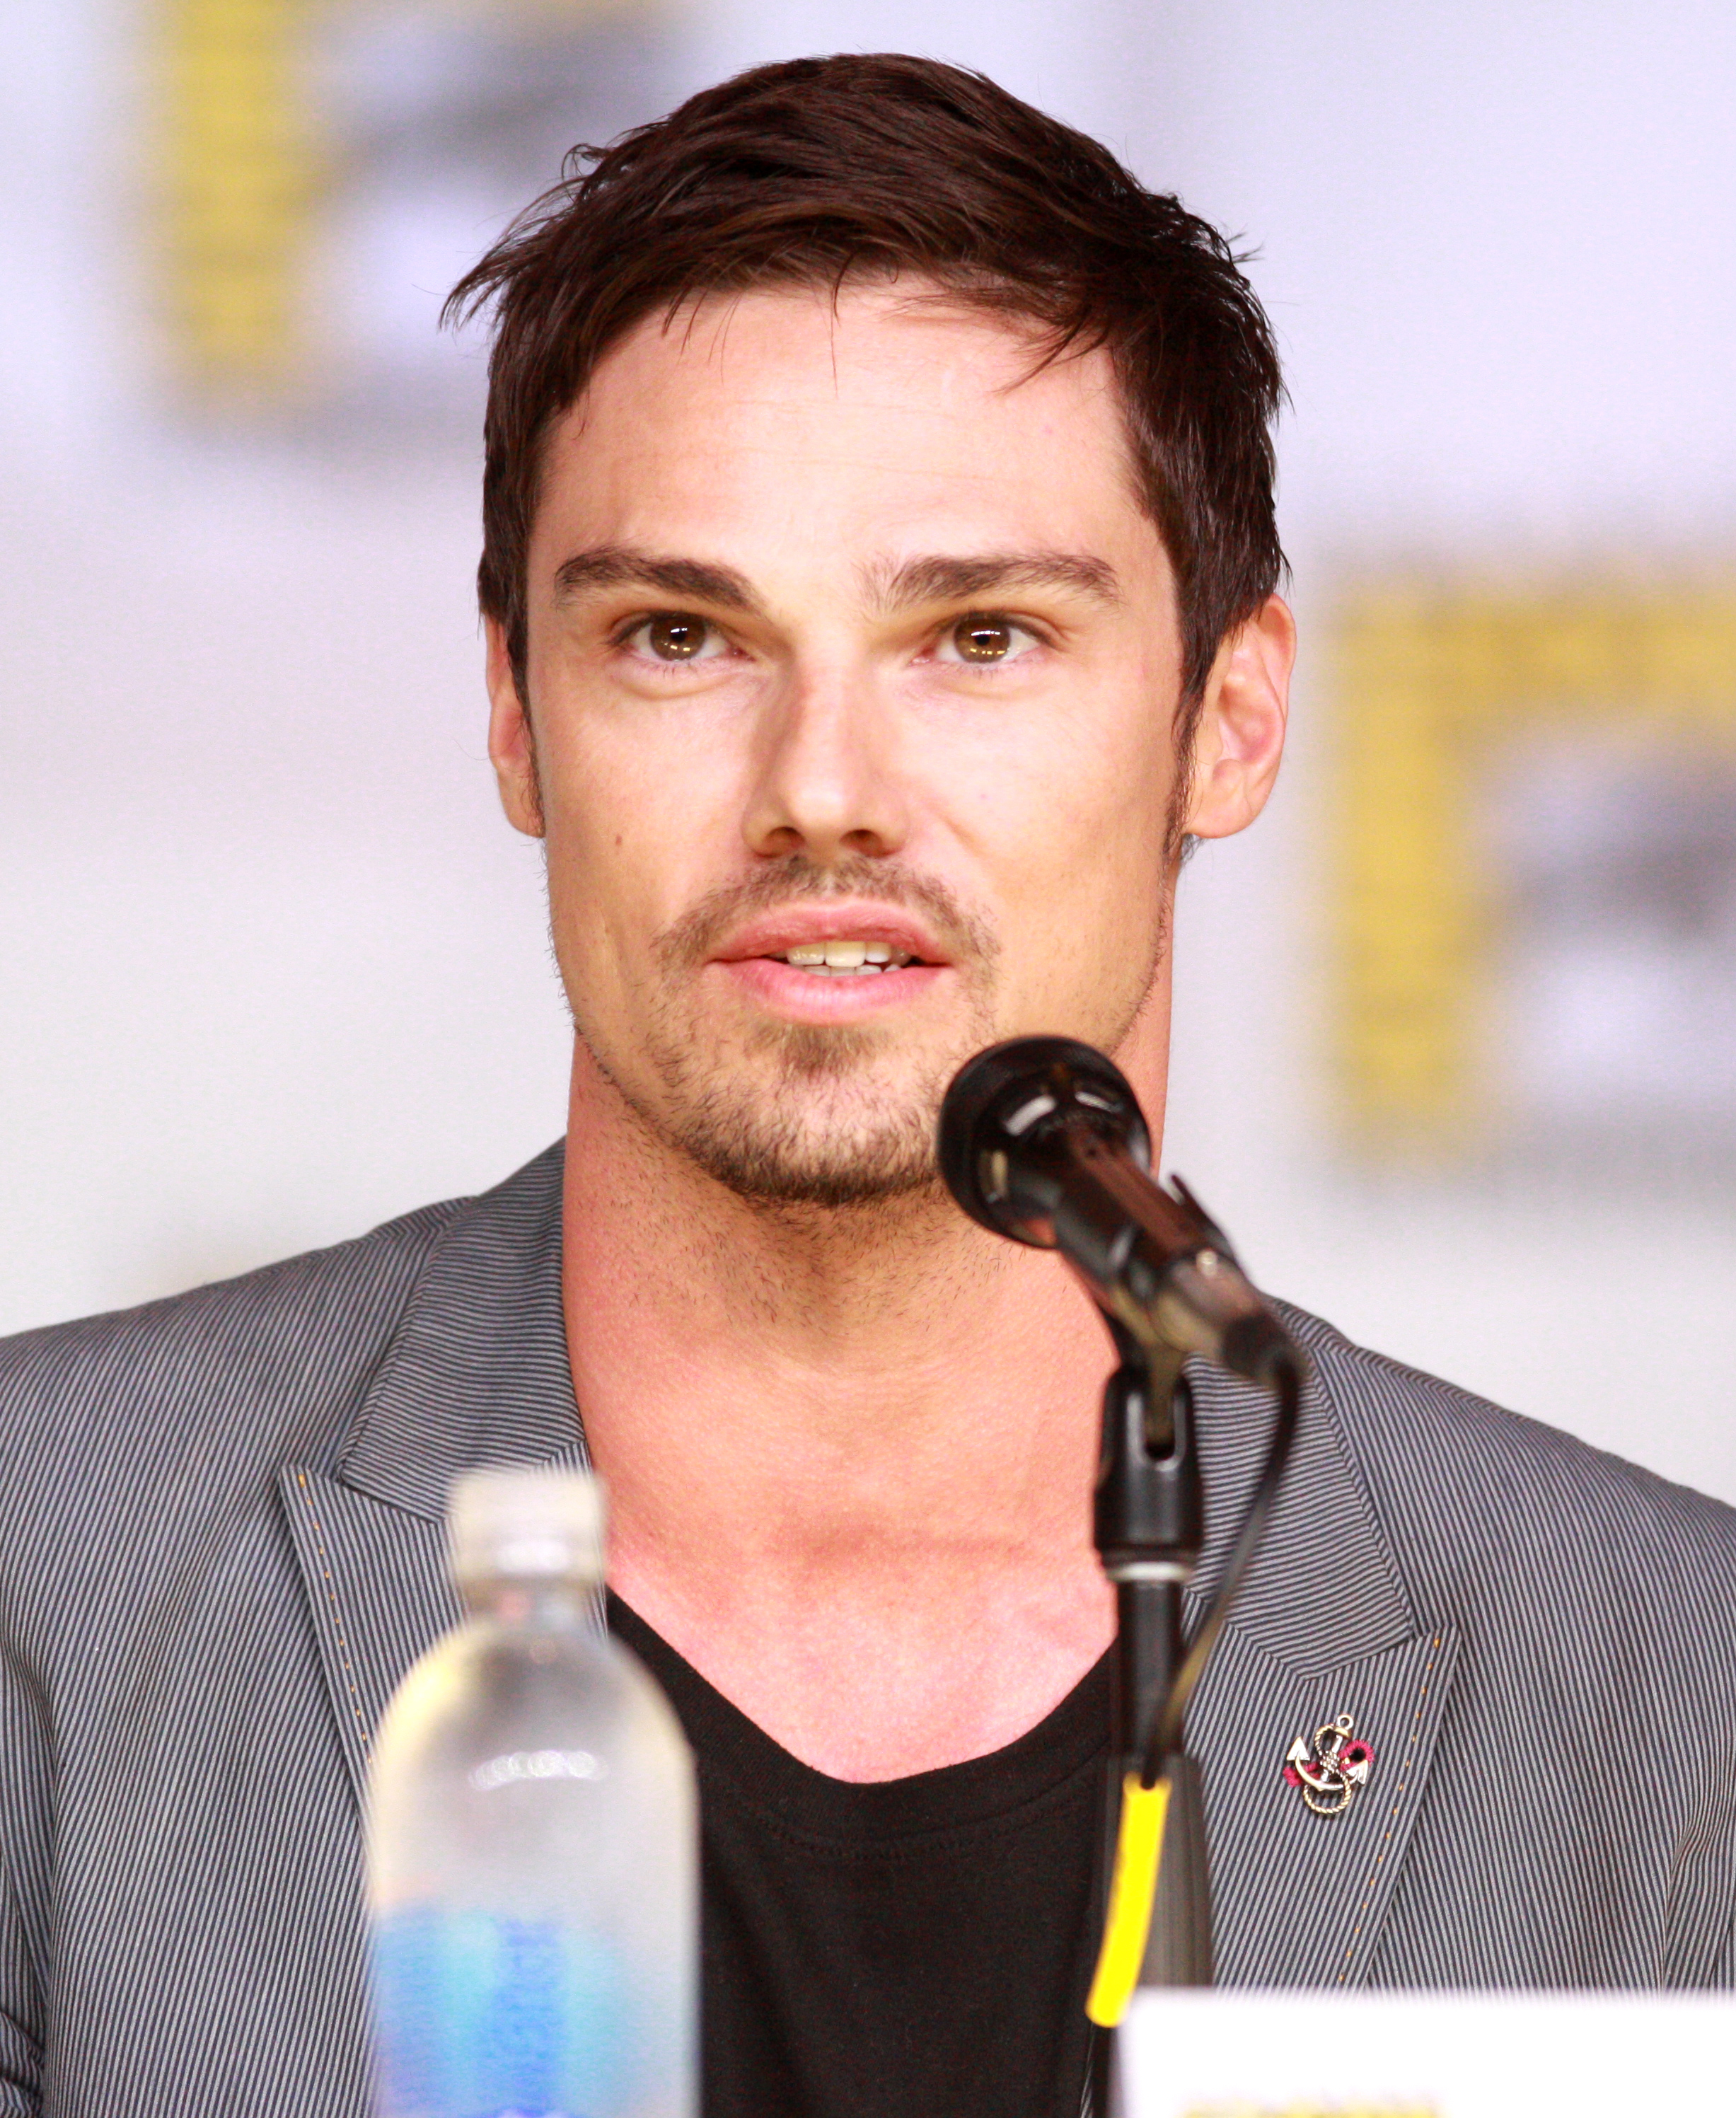 jay ryan 2016jay ryan instagram, jay ryan vk, jay ryan photo, jay ryan top of the lake, jay ryan kristin kreuk, jay ryan beauty and the beast, jay ryan 2016, jay ryan child, jay ryan and dianna fuemana divorce, jay ryan films, jay ryan daughter, jay ryan gallery, jay ryan twitter, jay ryan and kristin kreuk relationship, jay ryan insta, jay ryan filmography, jay ryan 2017, jay ryan height weight, jay ryan interview, jay ryan illustrator